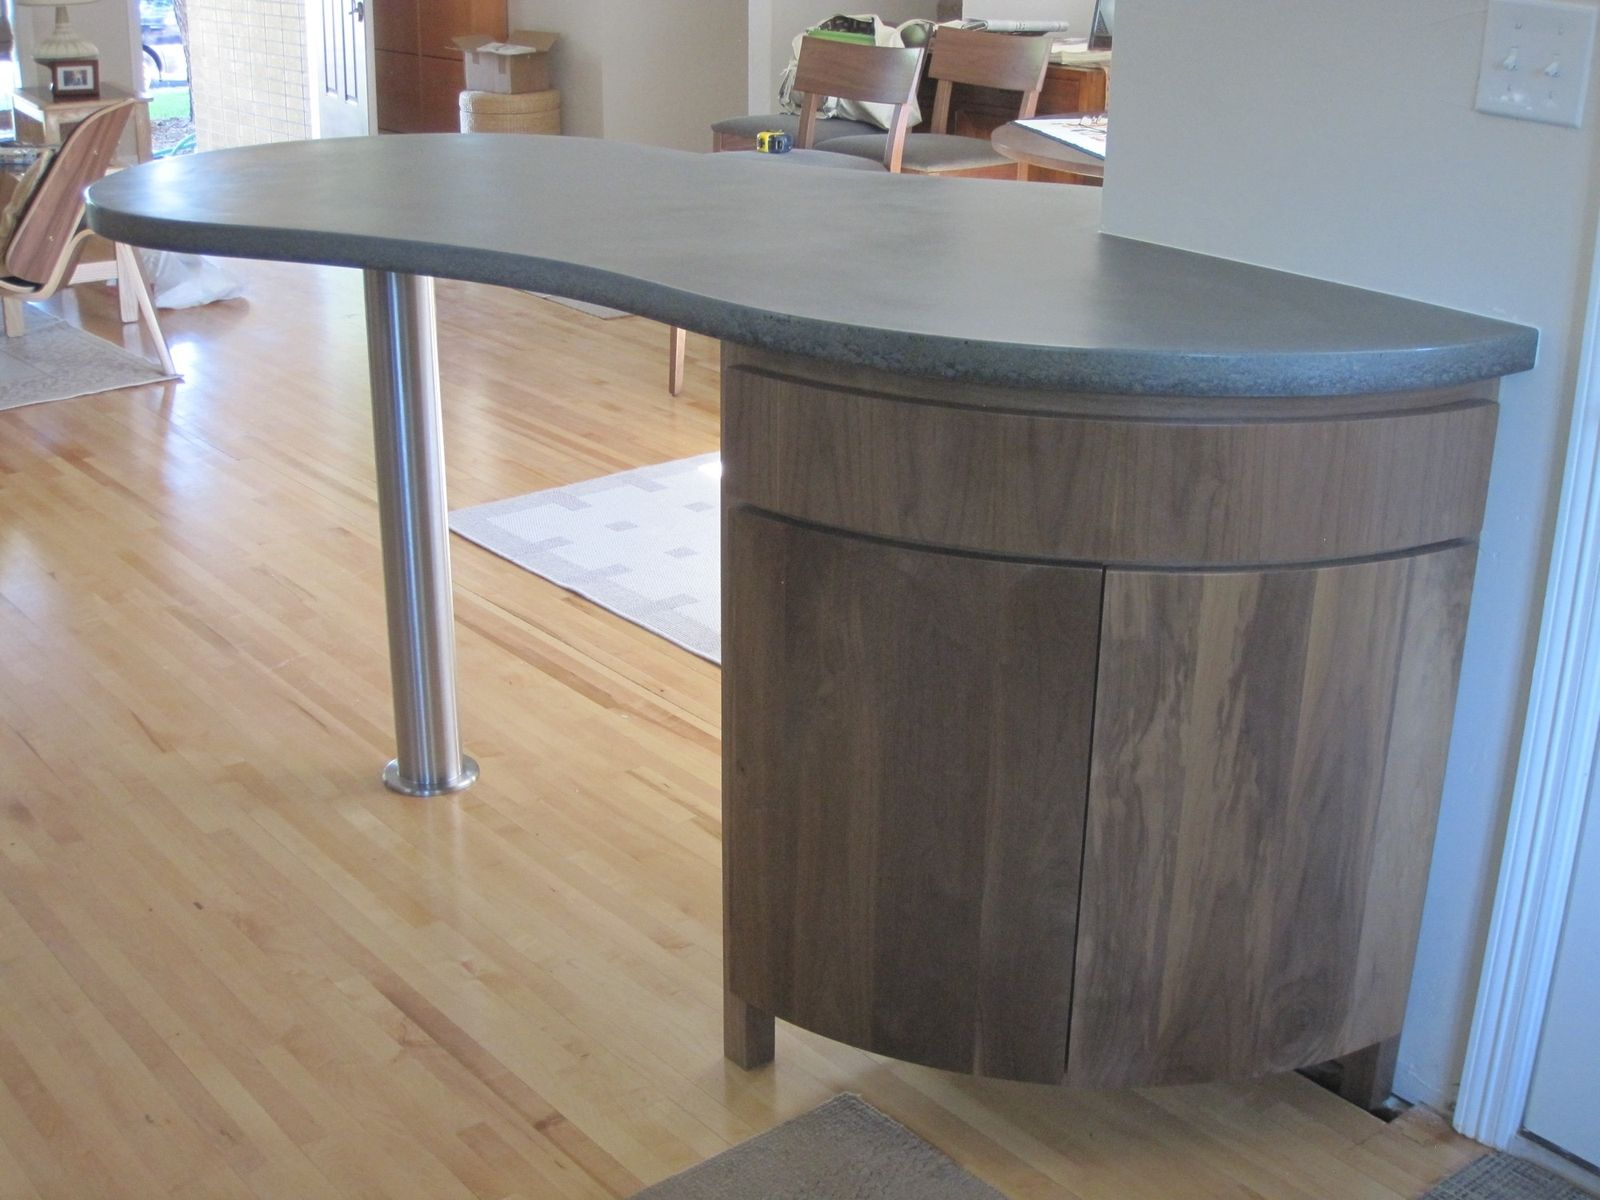 Hand Crafted Curved Kitchen Island Cabinet by Mcguire Woodworking